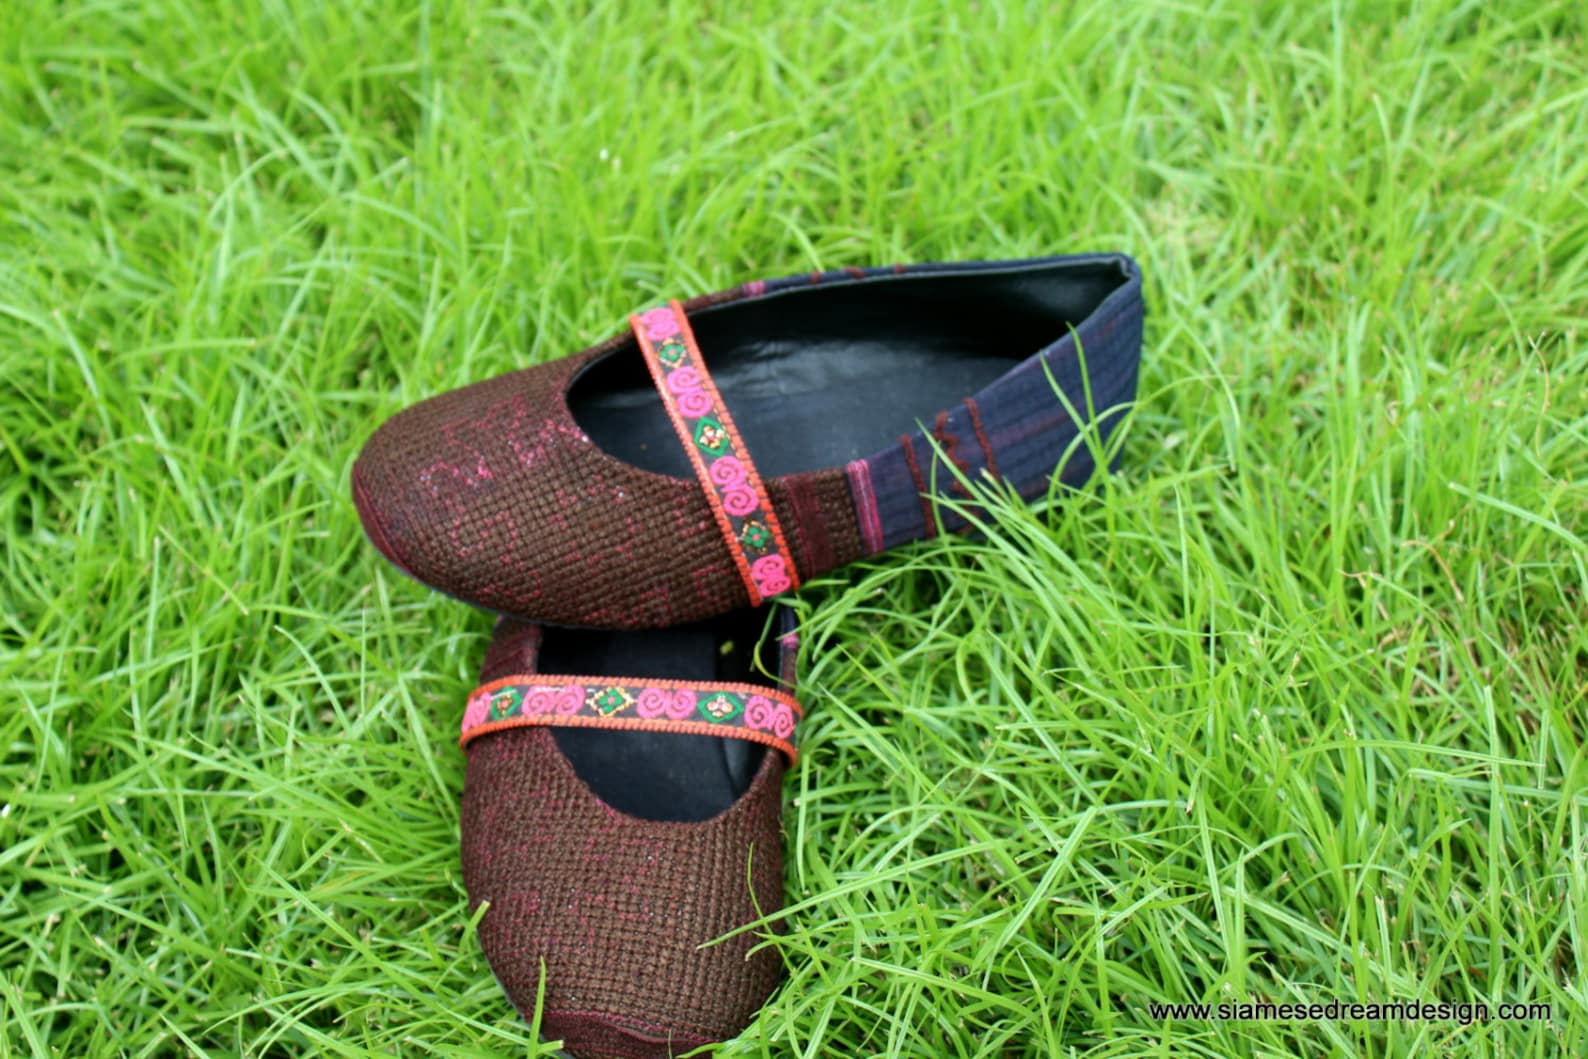 ballet flat style girls shoes in ethnic hmong navy and brown embroidery with pink trim